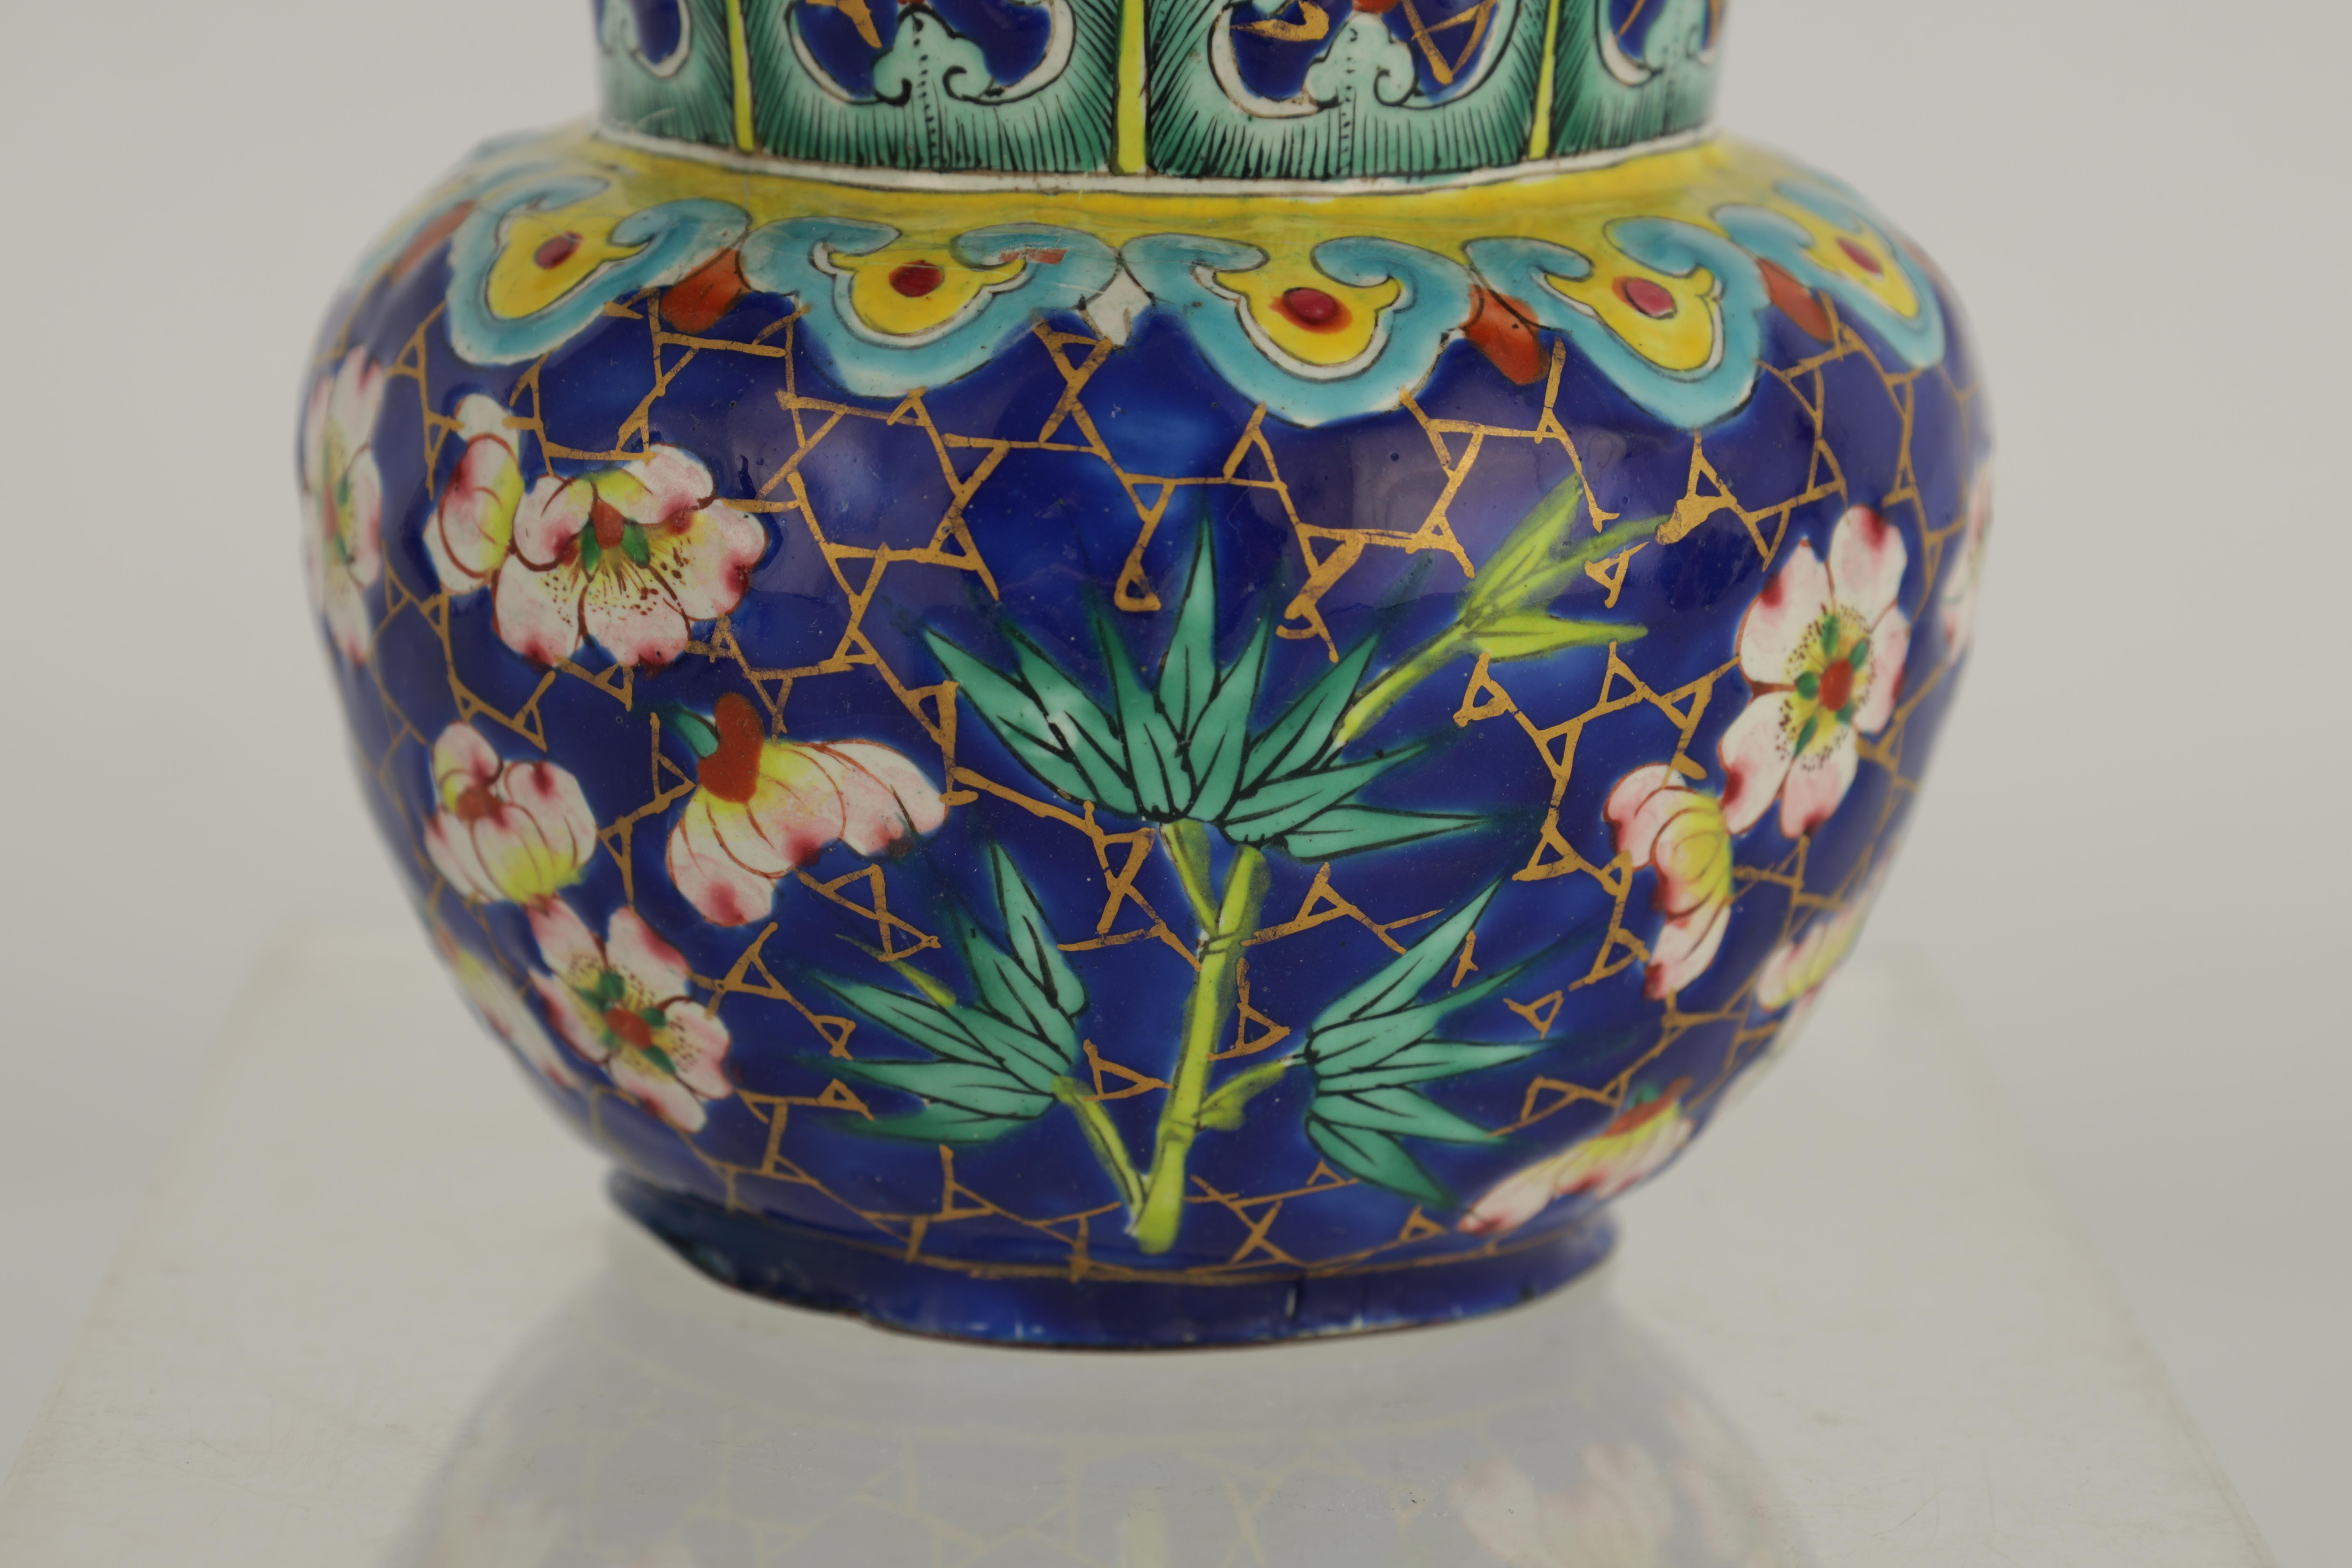 AN EARLY 19TH CENTURY CHINESE ENAMEL VASE of bulbous form with brightly coloured enamel decoration - Image 4 of 5